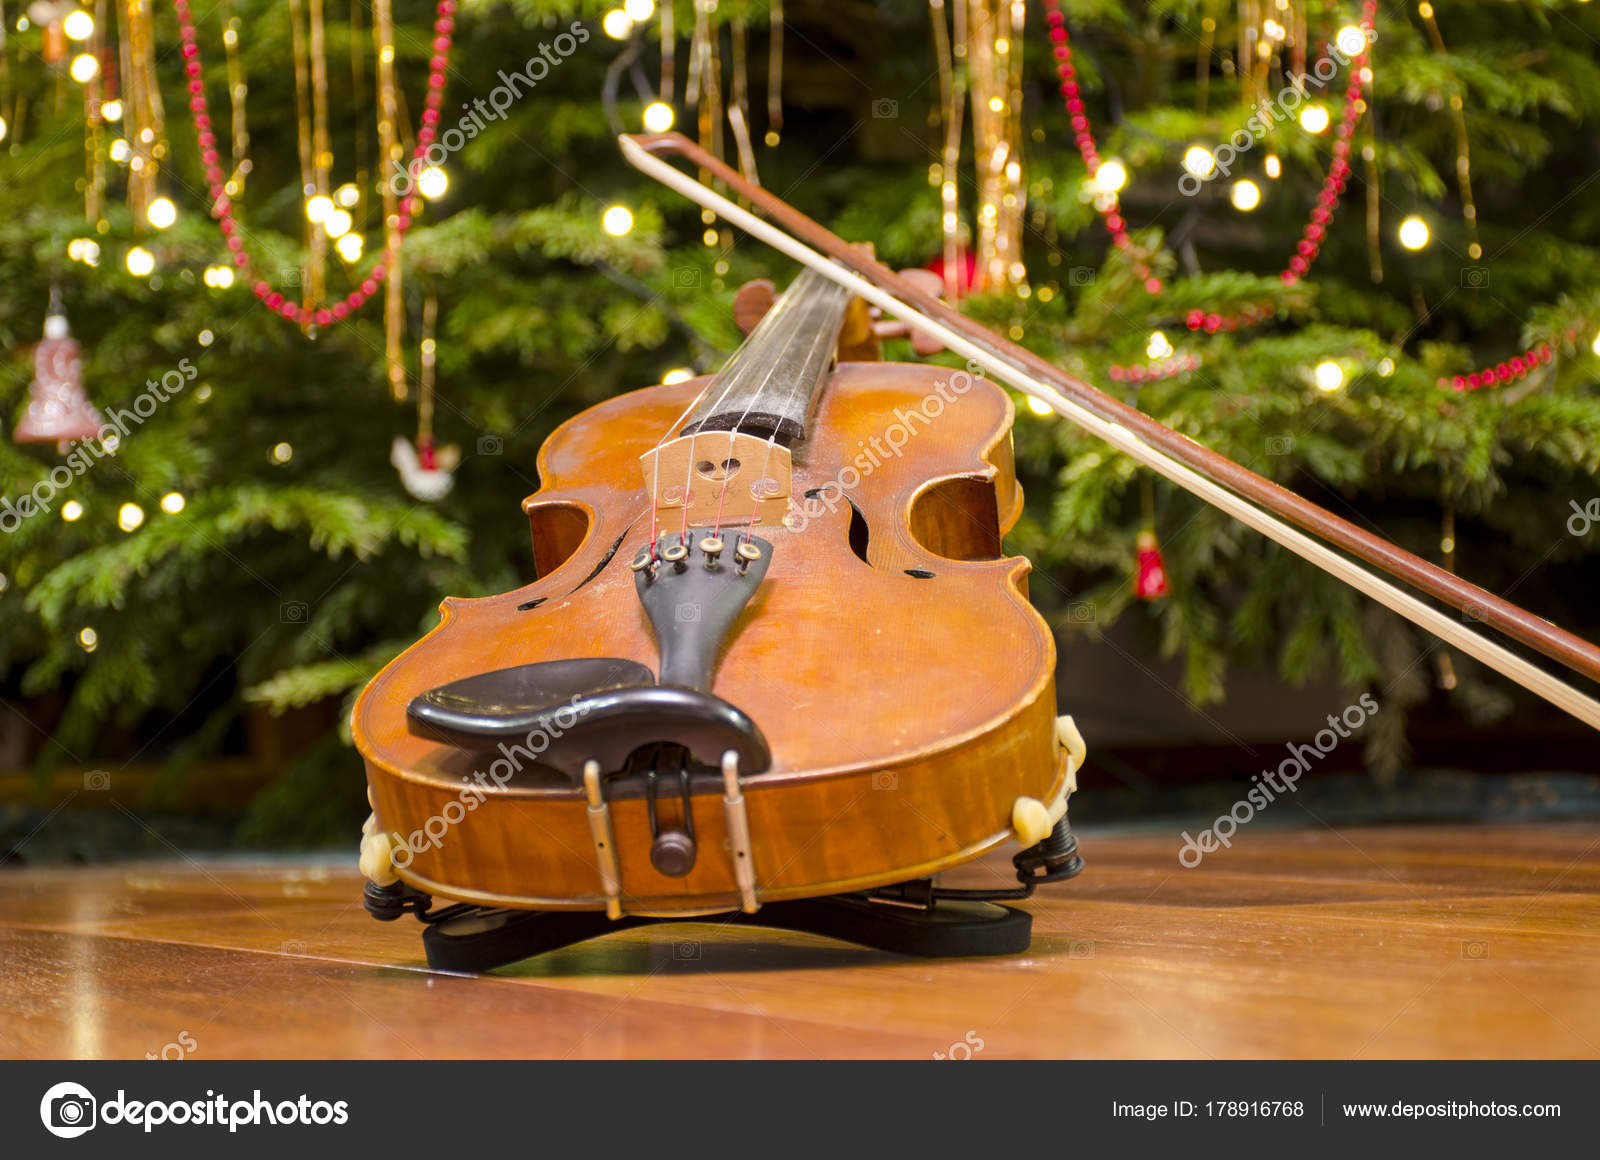 Christmas Violin.The Violin Front Of A Christmas Tree With Decoration Stock